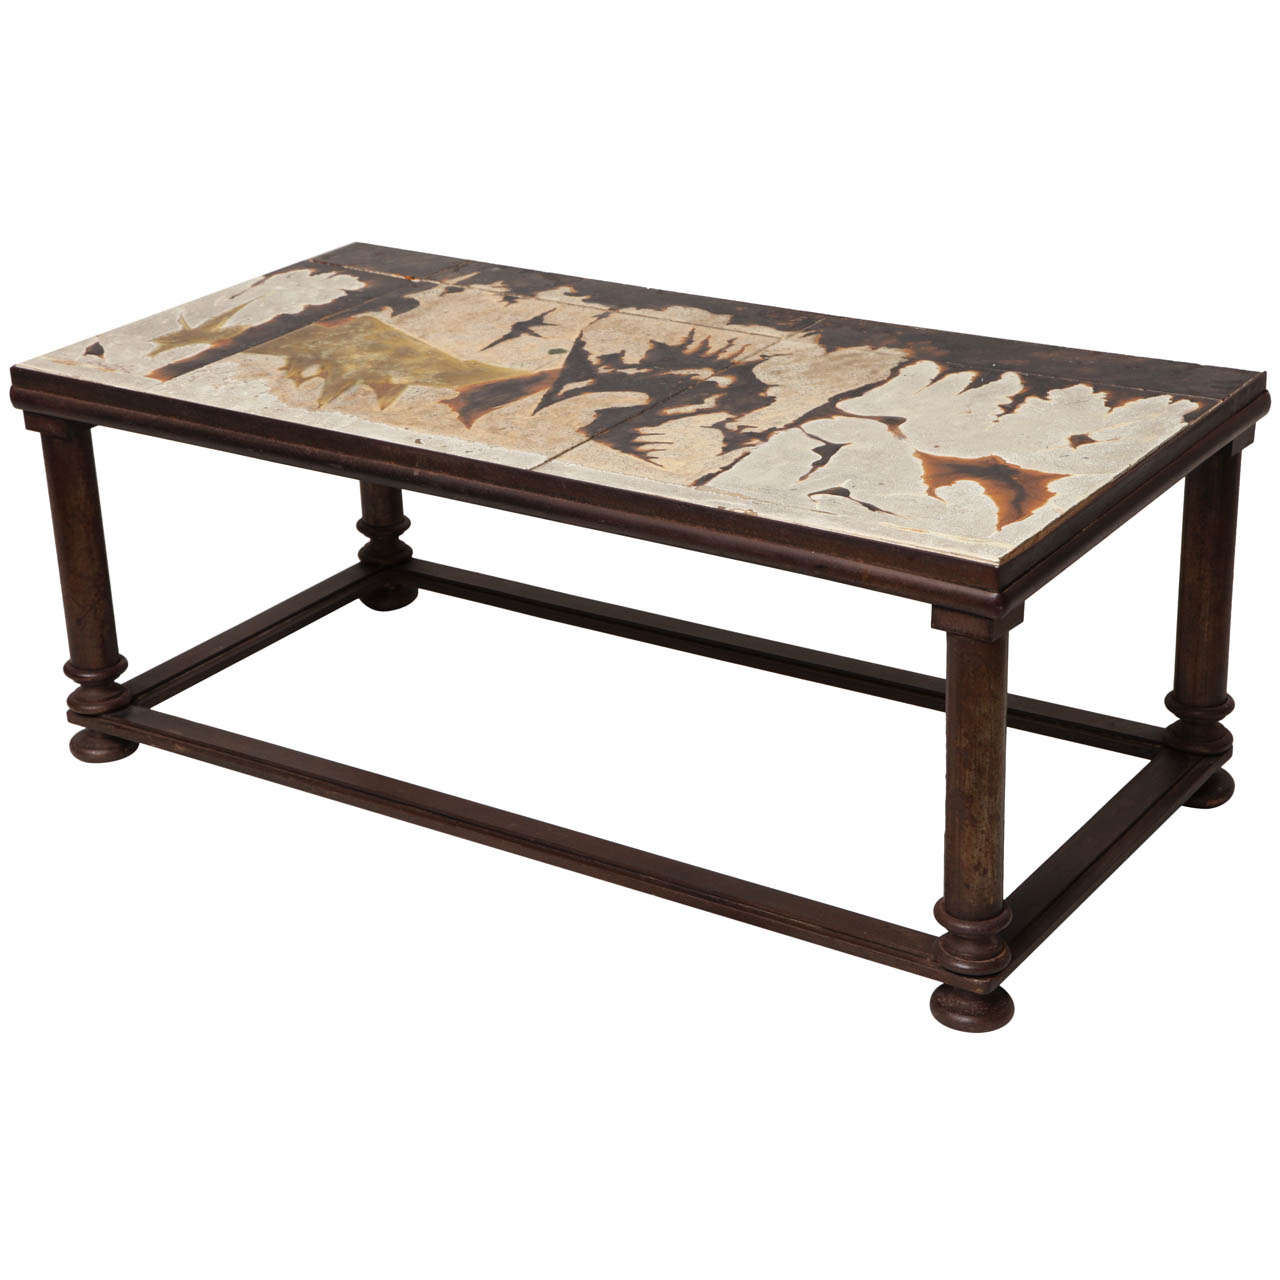 Midcentury Ceramic And Bronzed Iron Coffee Table At 1stdibs